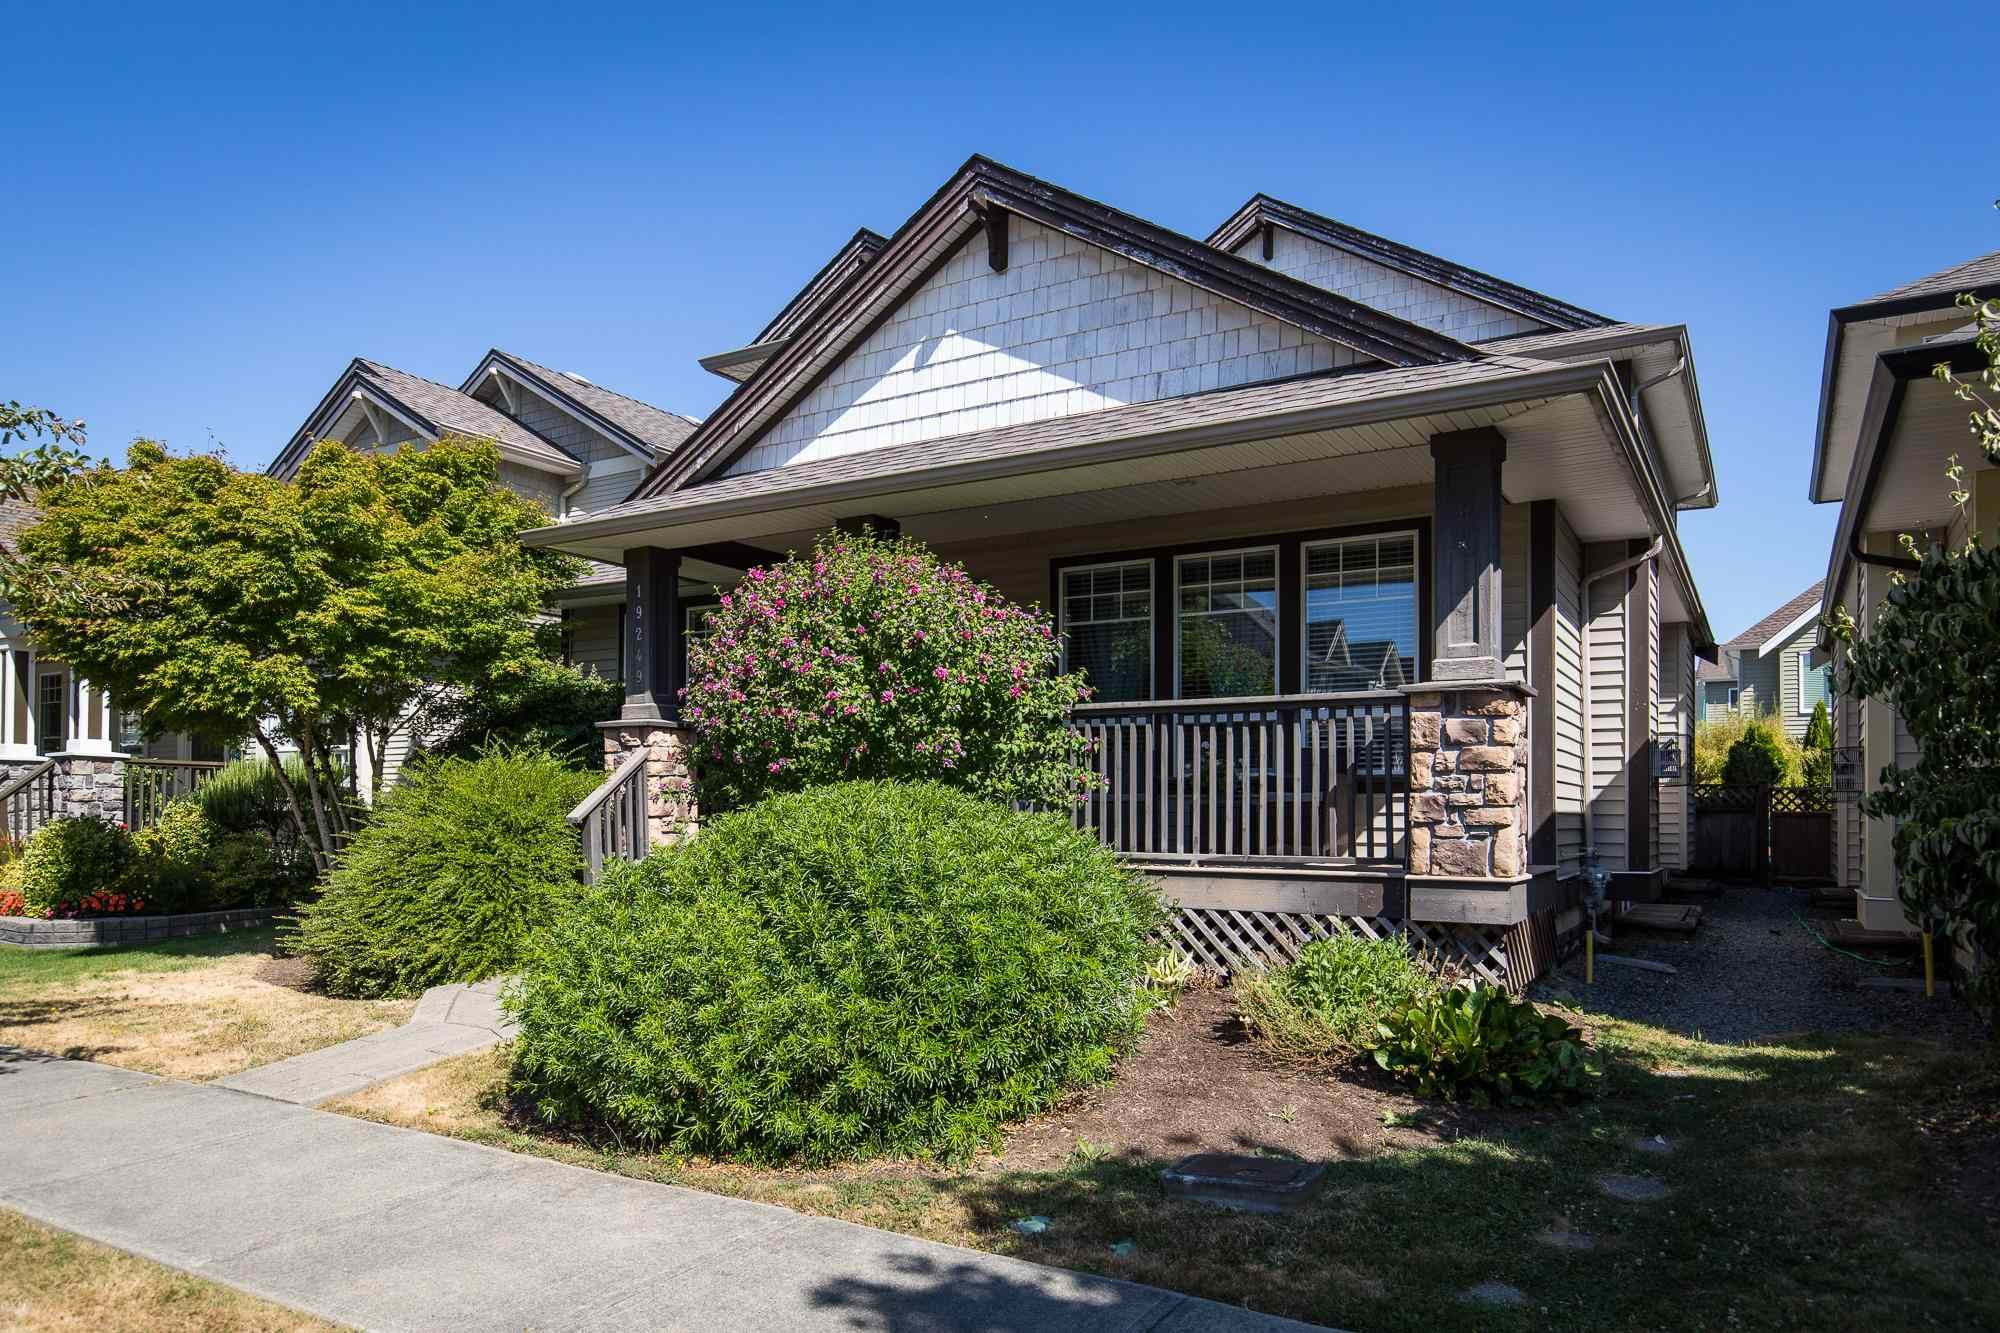 Main Photo: 19249 69 Avenue in Surrey: Clayton House for sale (Cloverdale)  : MLS®# R2605035